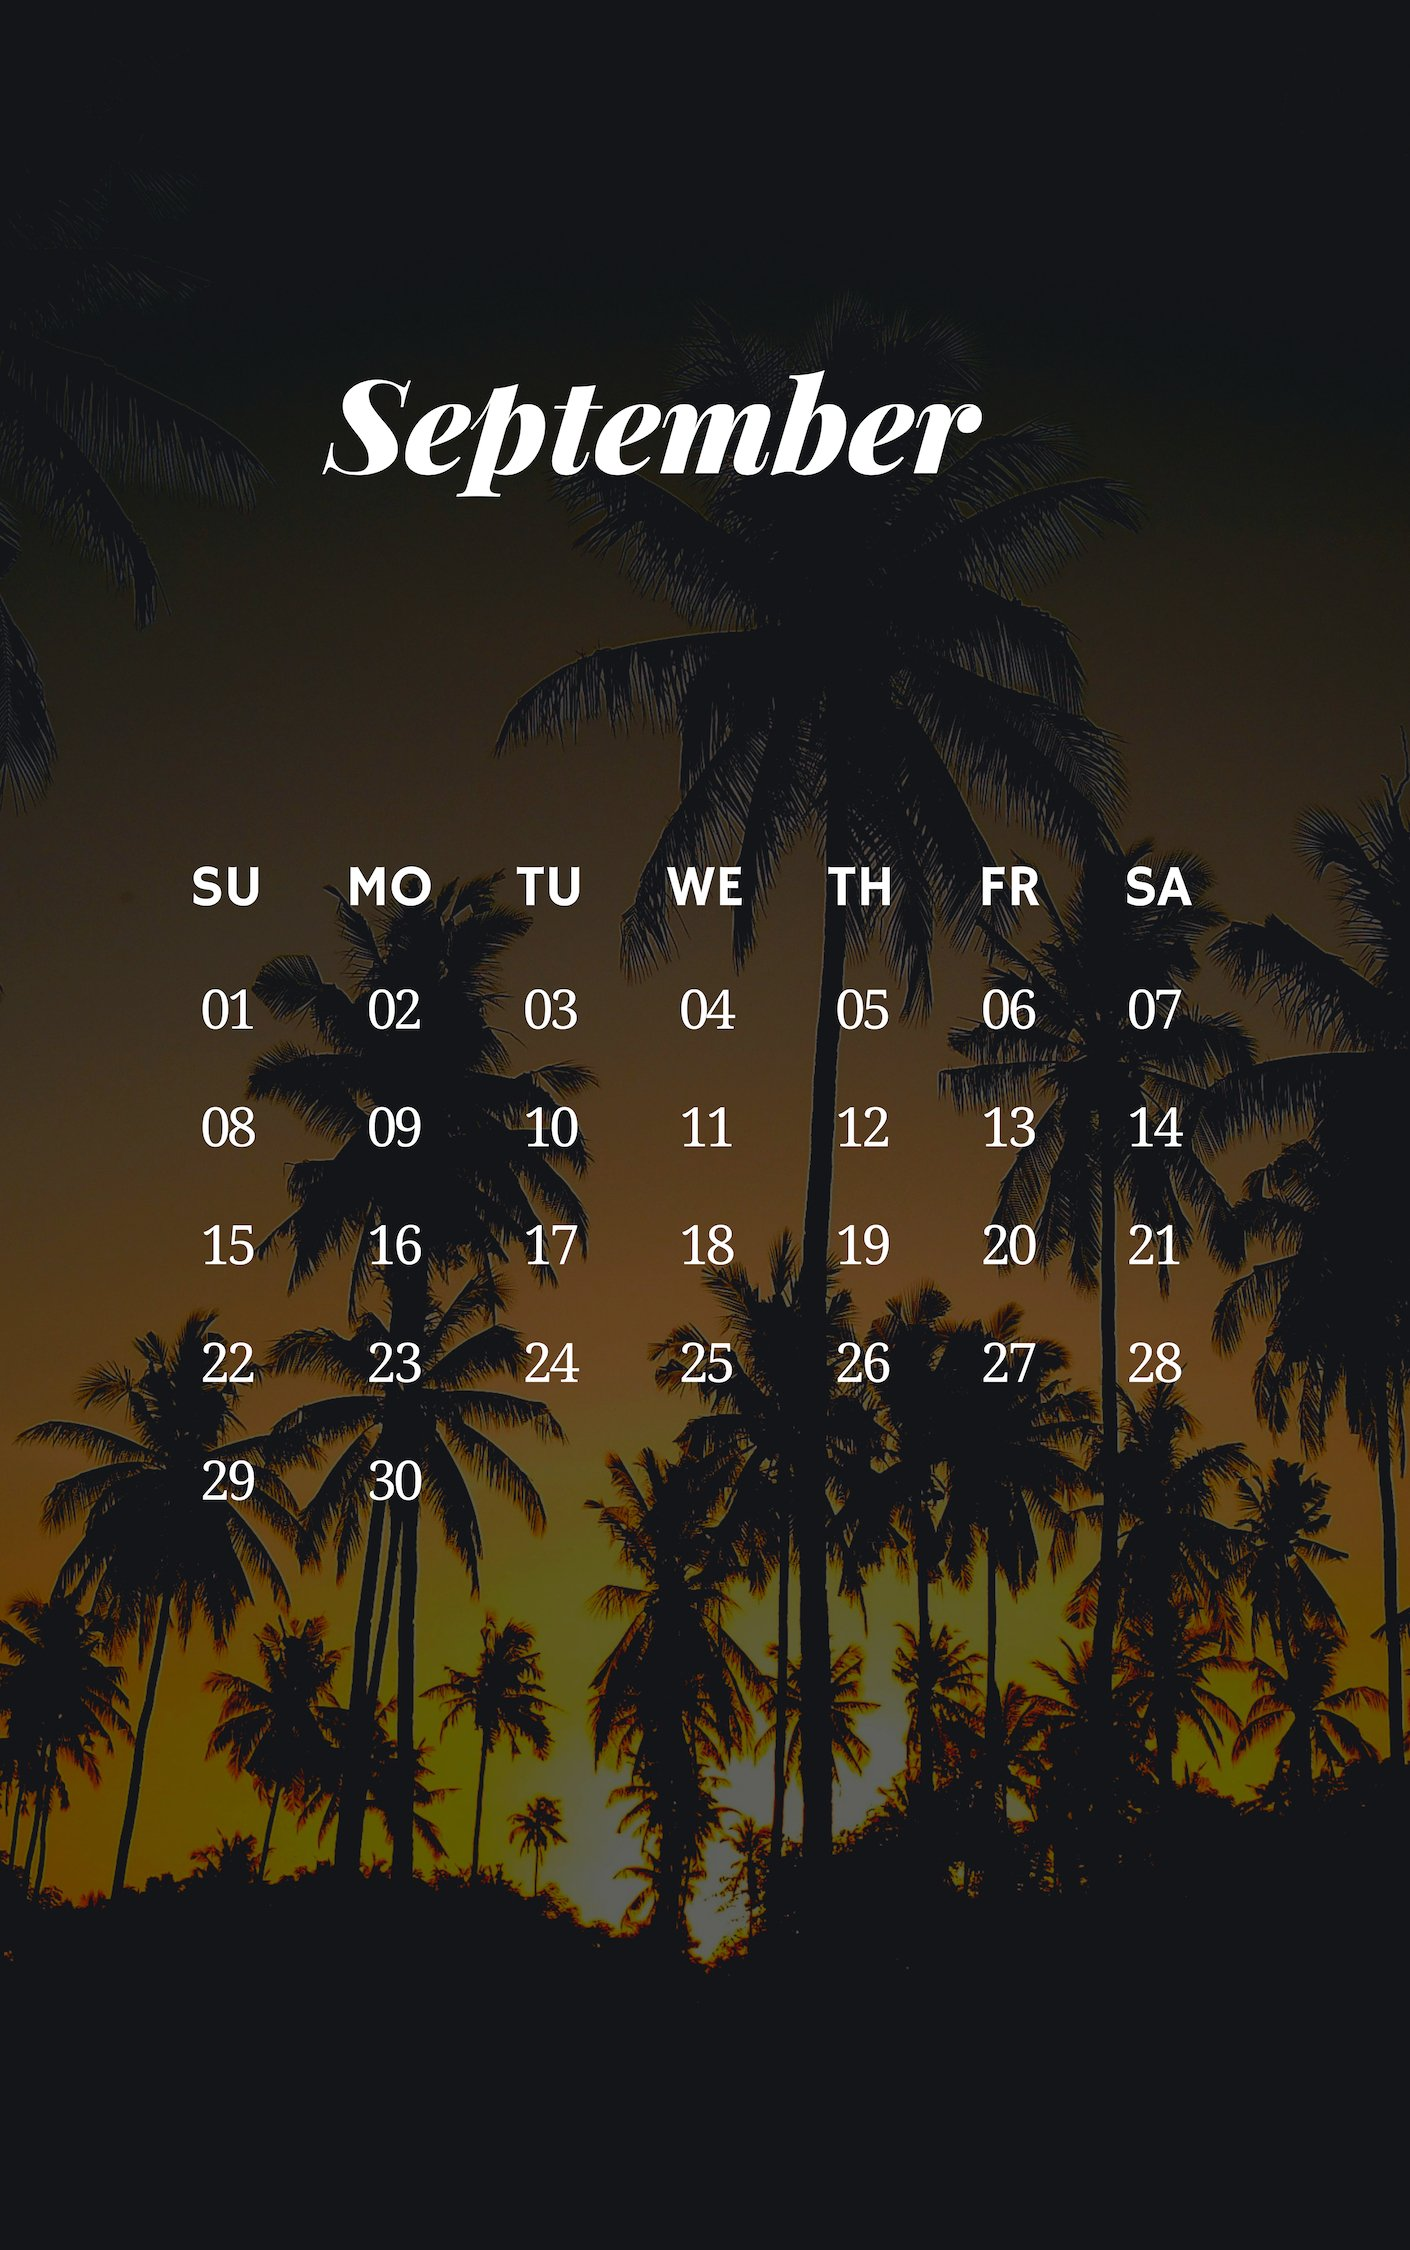 September 2019 iPhone Sunrise Wallpaper